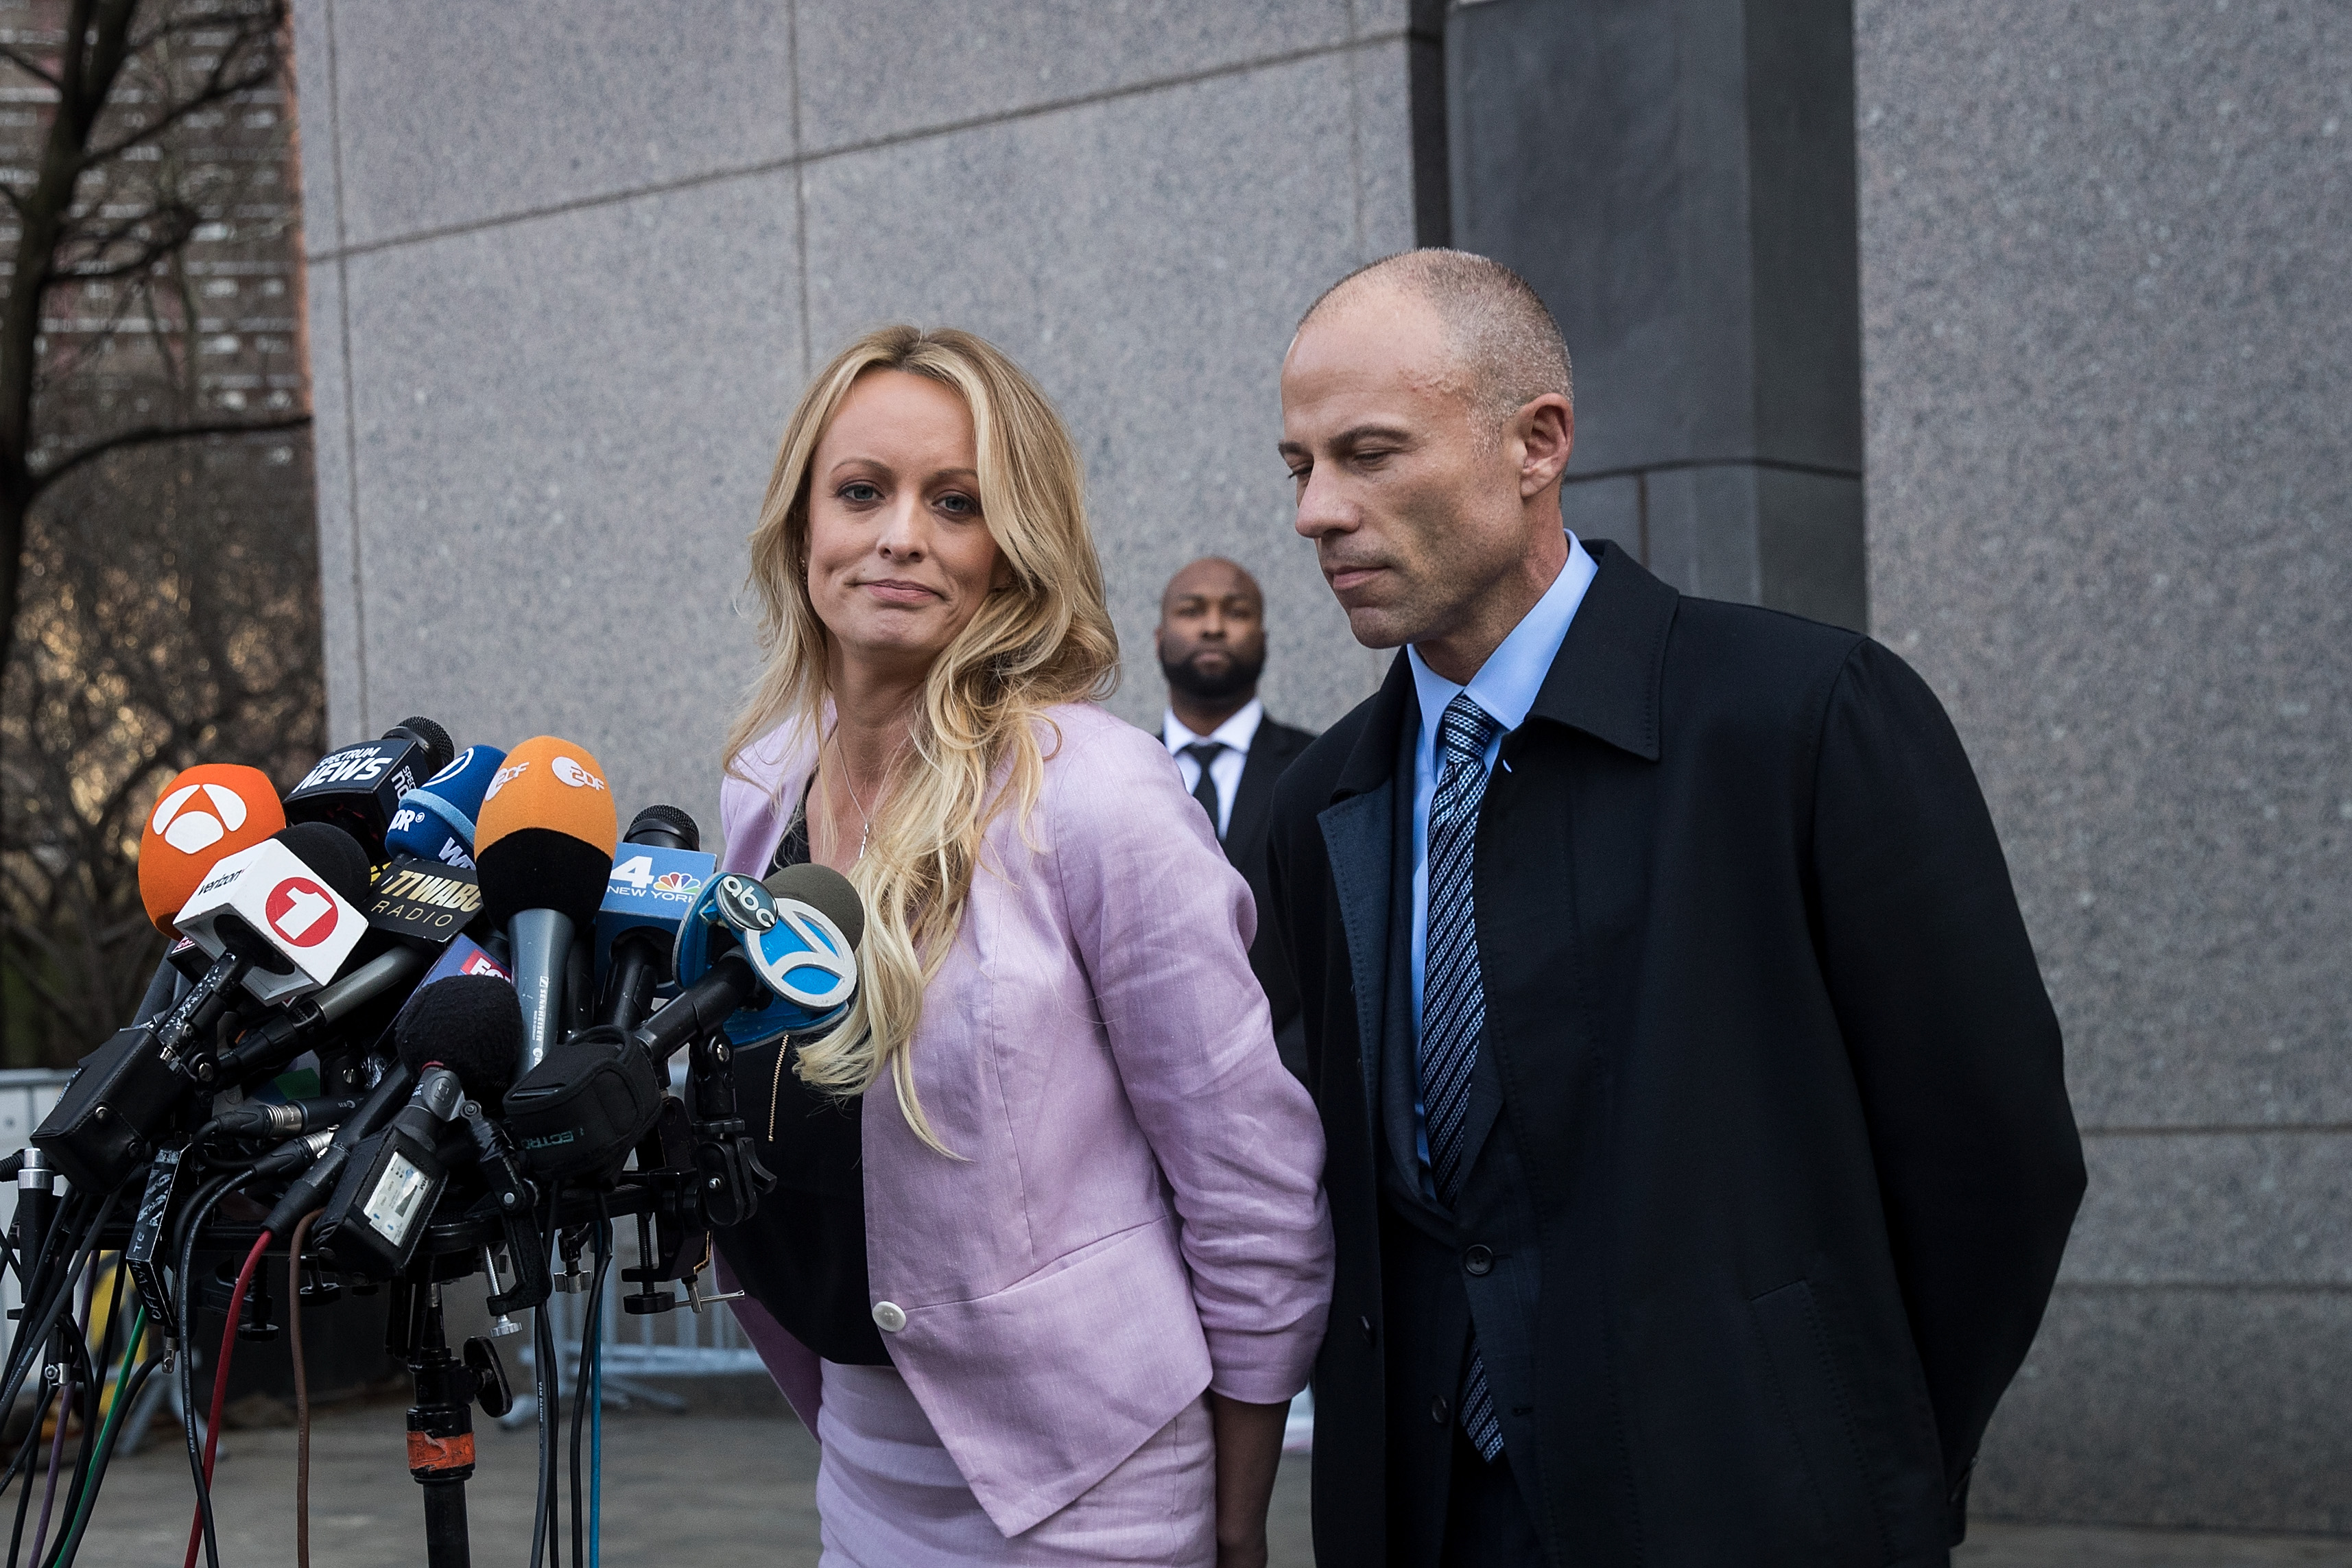 (L to R) Adult film actress Stormy Daniels (Stephanie Clifford) and Michael Avenatti, attorney for Stormy Daniels, speak to the media as they exit the United States District Court Southern District of New York.